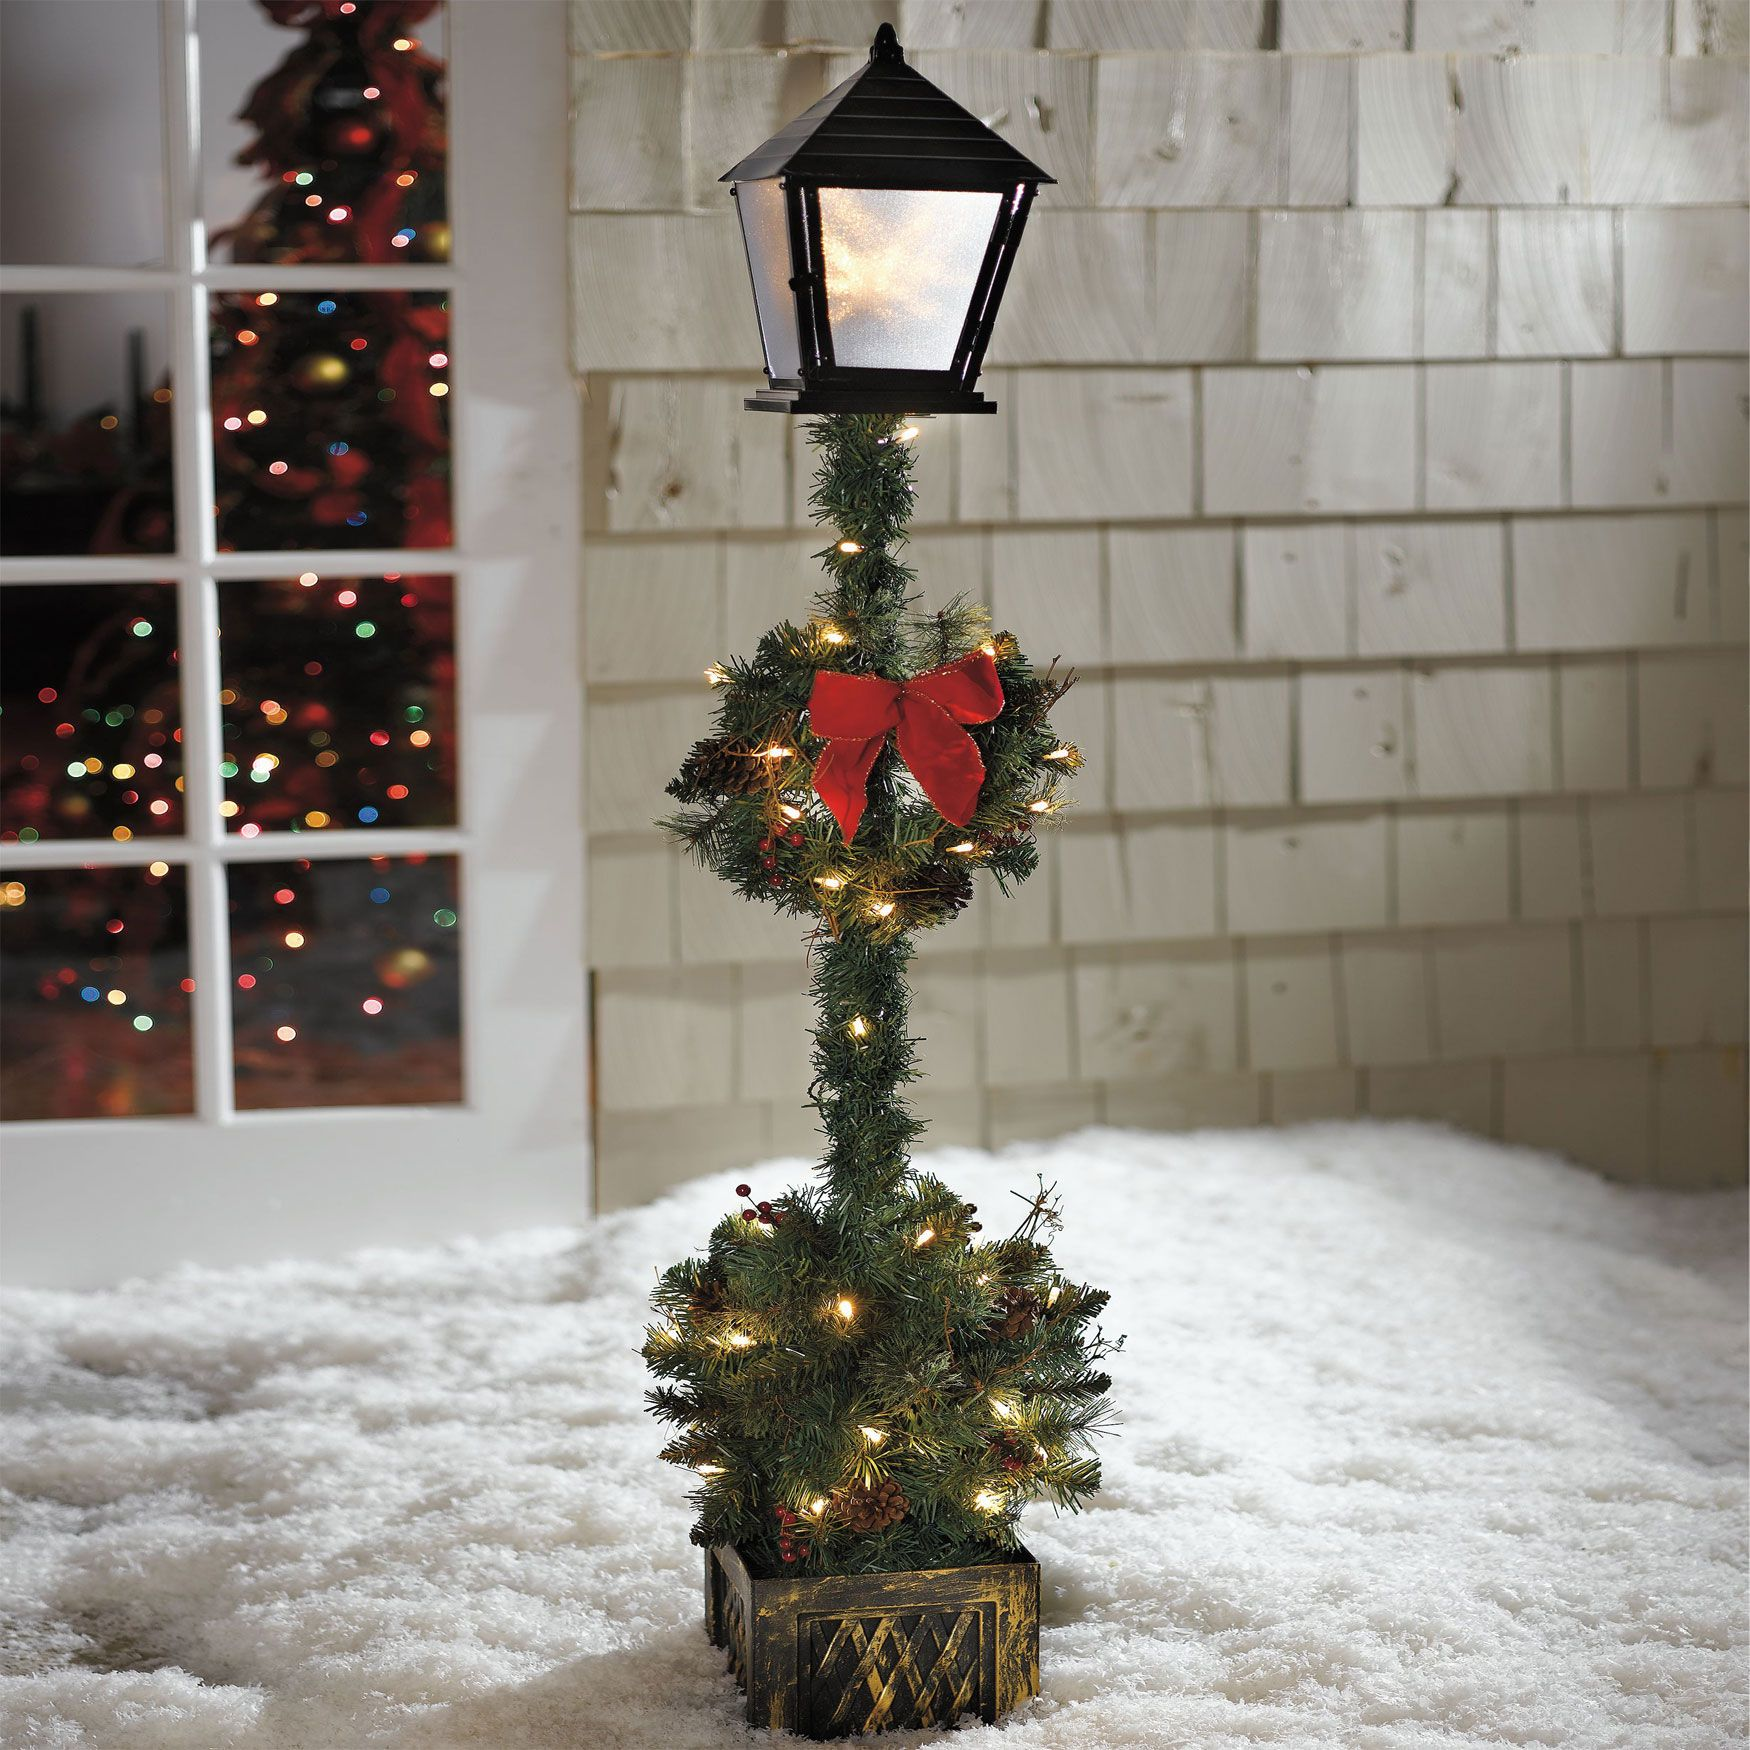 cordless 5 lamp post topiary outdoor christmas decor - Christmas Lamp Post Decoration